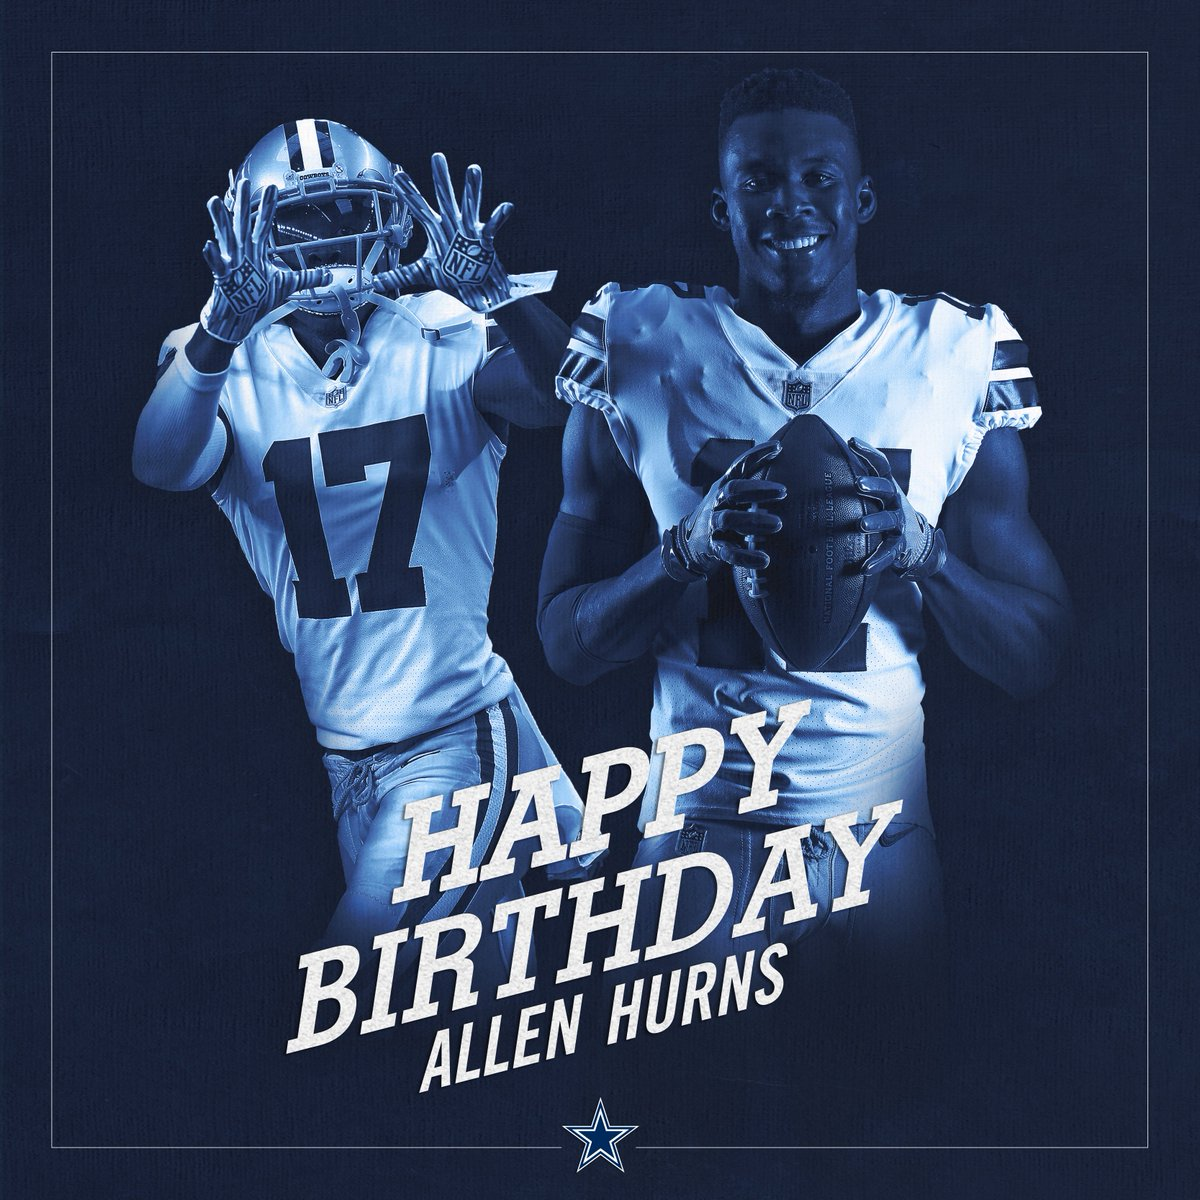 #CowboysNation, join us in wishing @A1hurns a happy birthday!